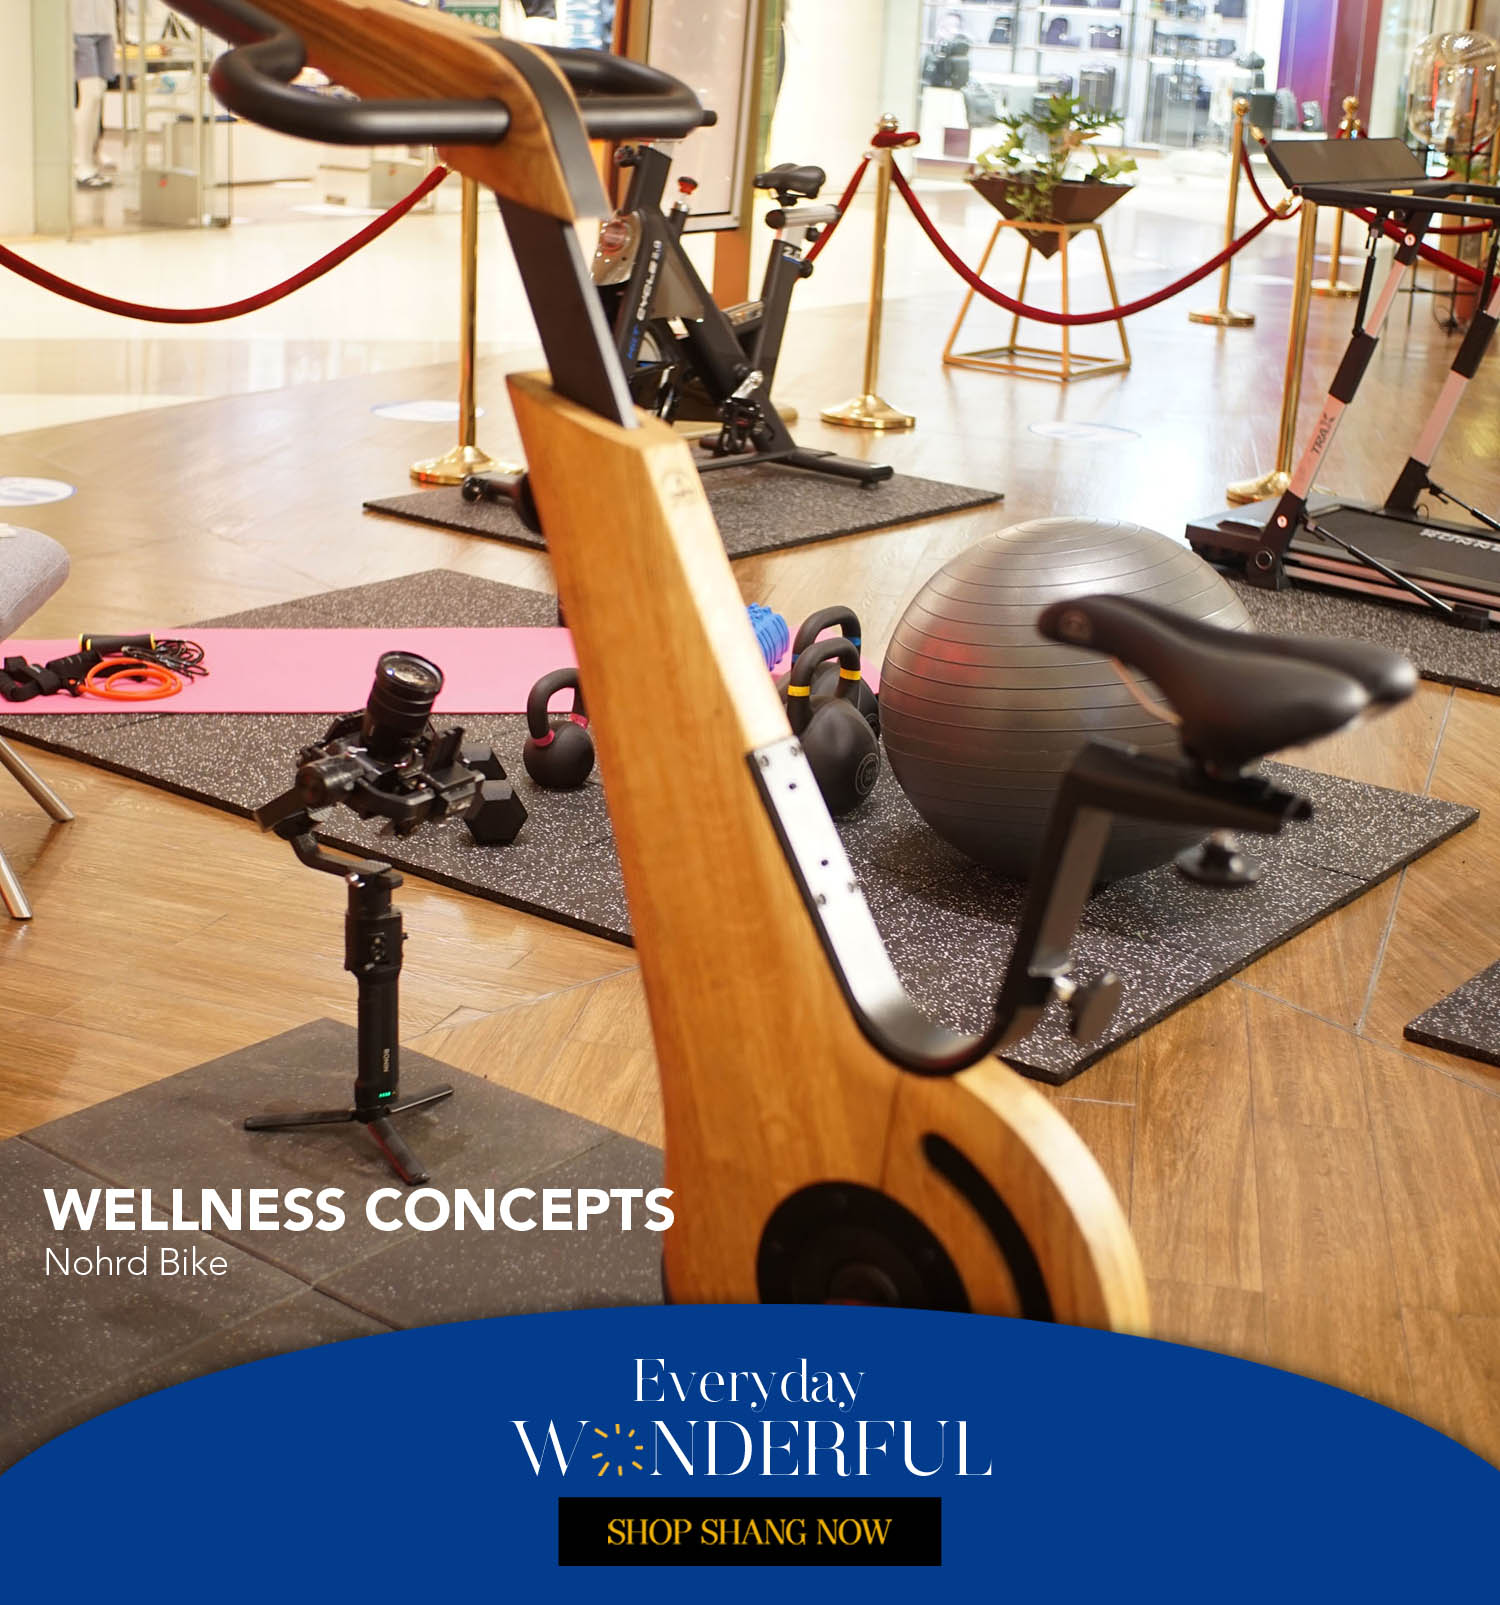 Nohrd Bike from Wellness Concepts